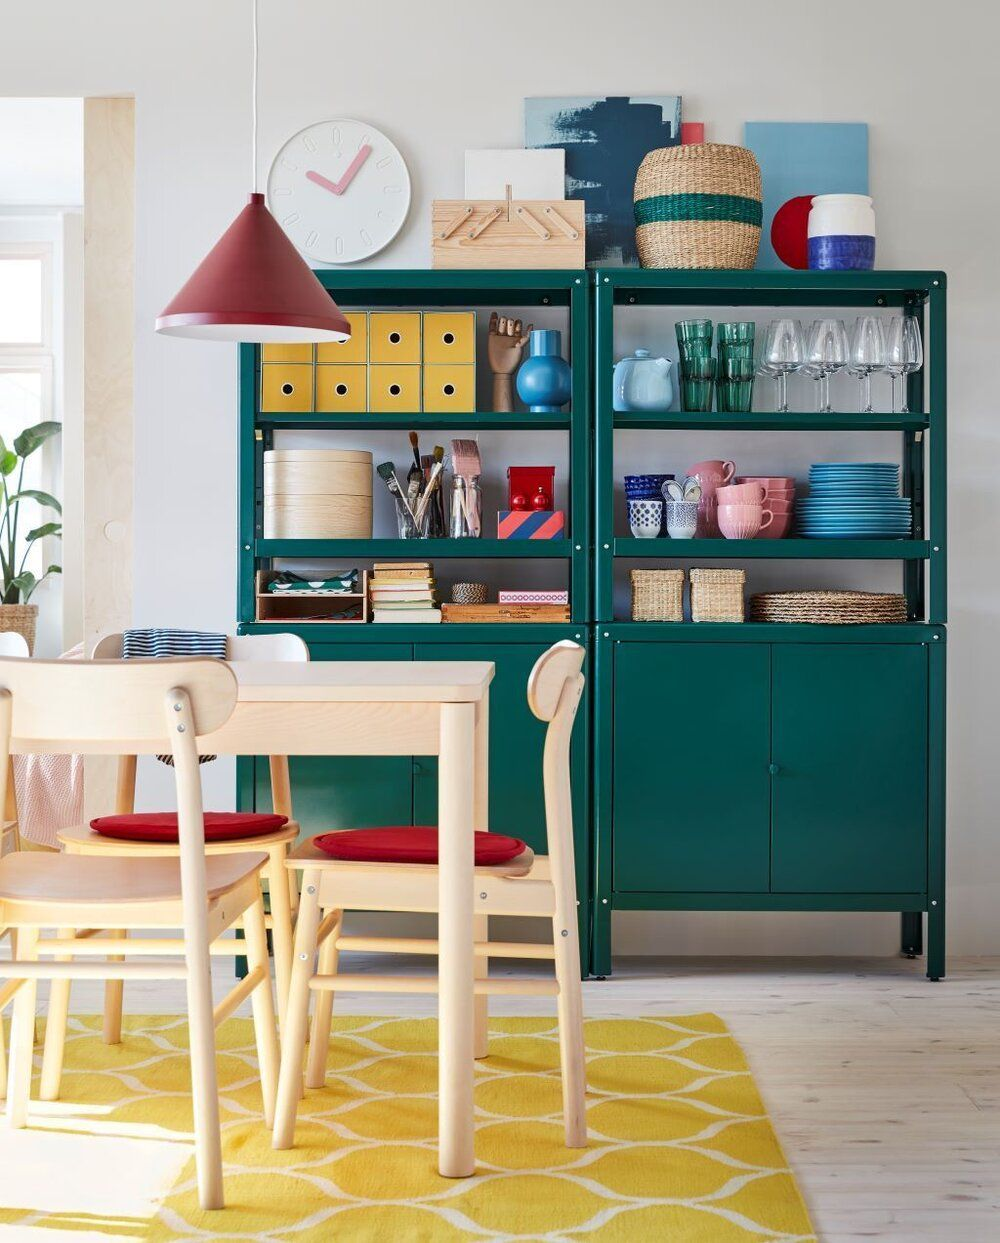 IKEA Catalog 2021   A Handbook For A Better Everyday Life at Home — THE NORDROOM in 2020   Ikea ...